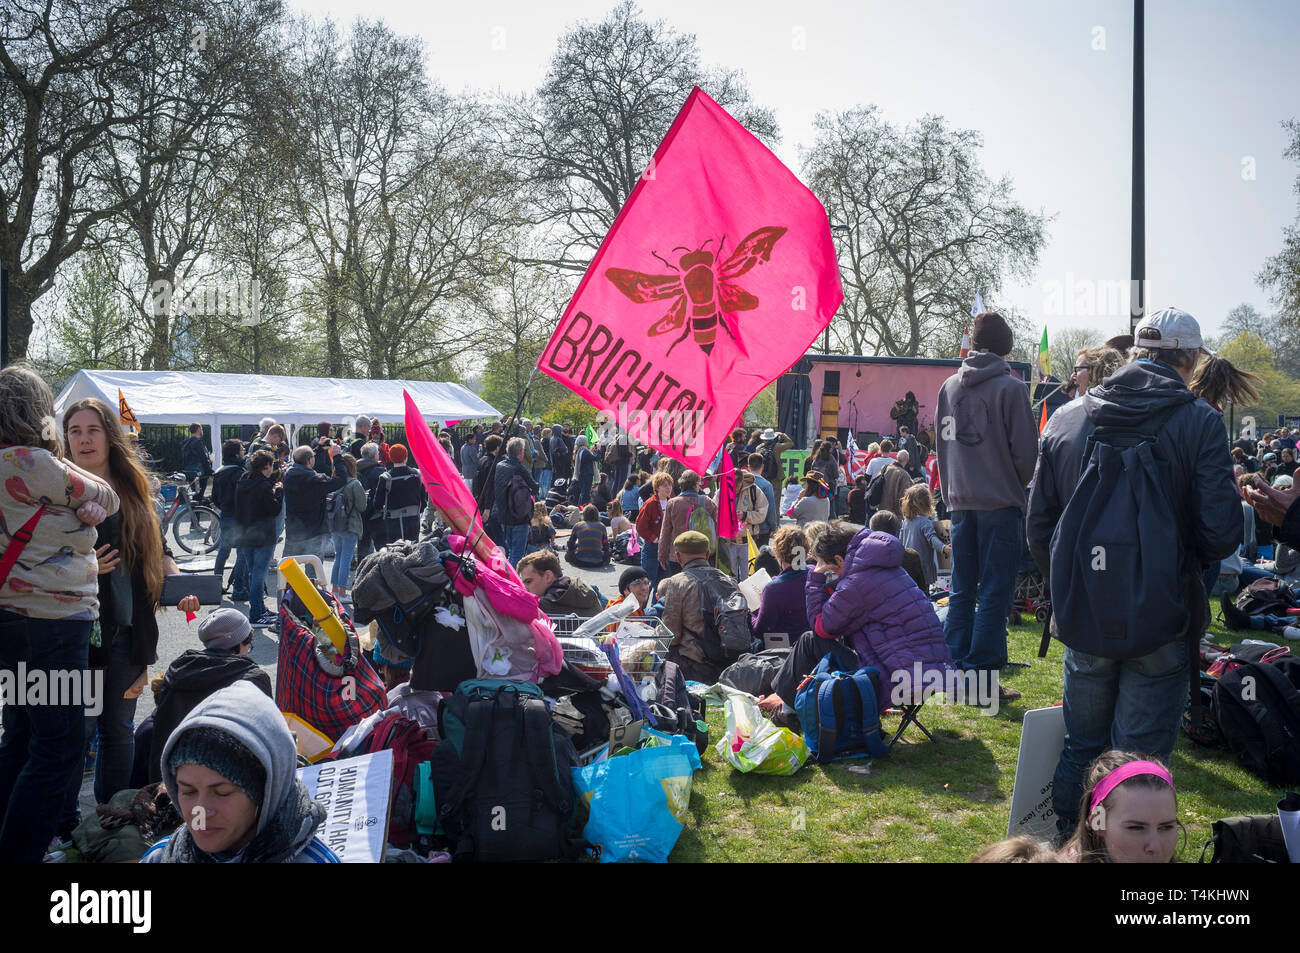 A flag from Brighton at the Extinction Rebellion demonstration in Marble Arch Stock Photo